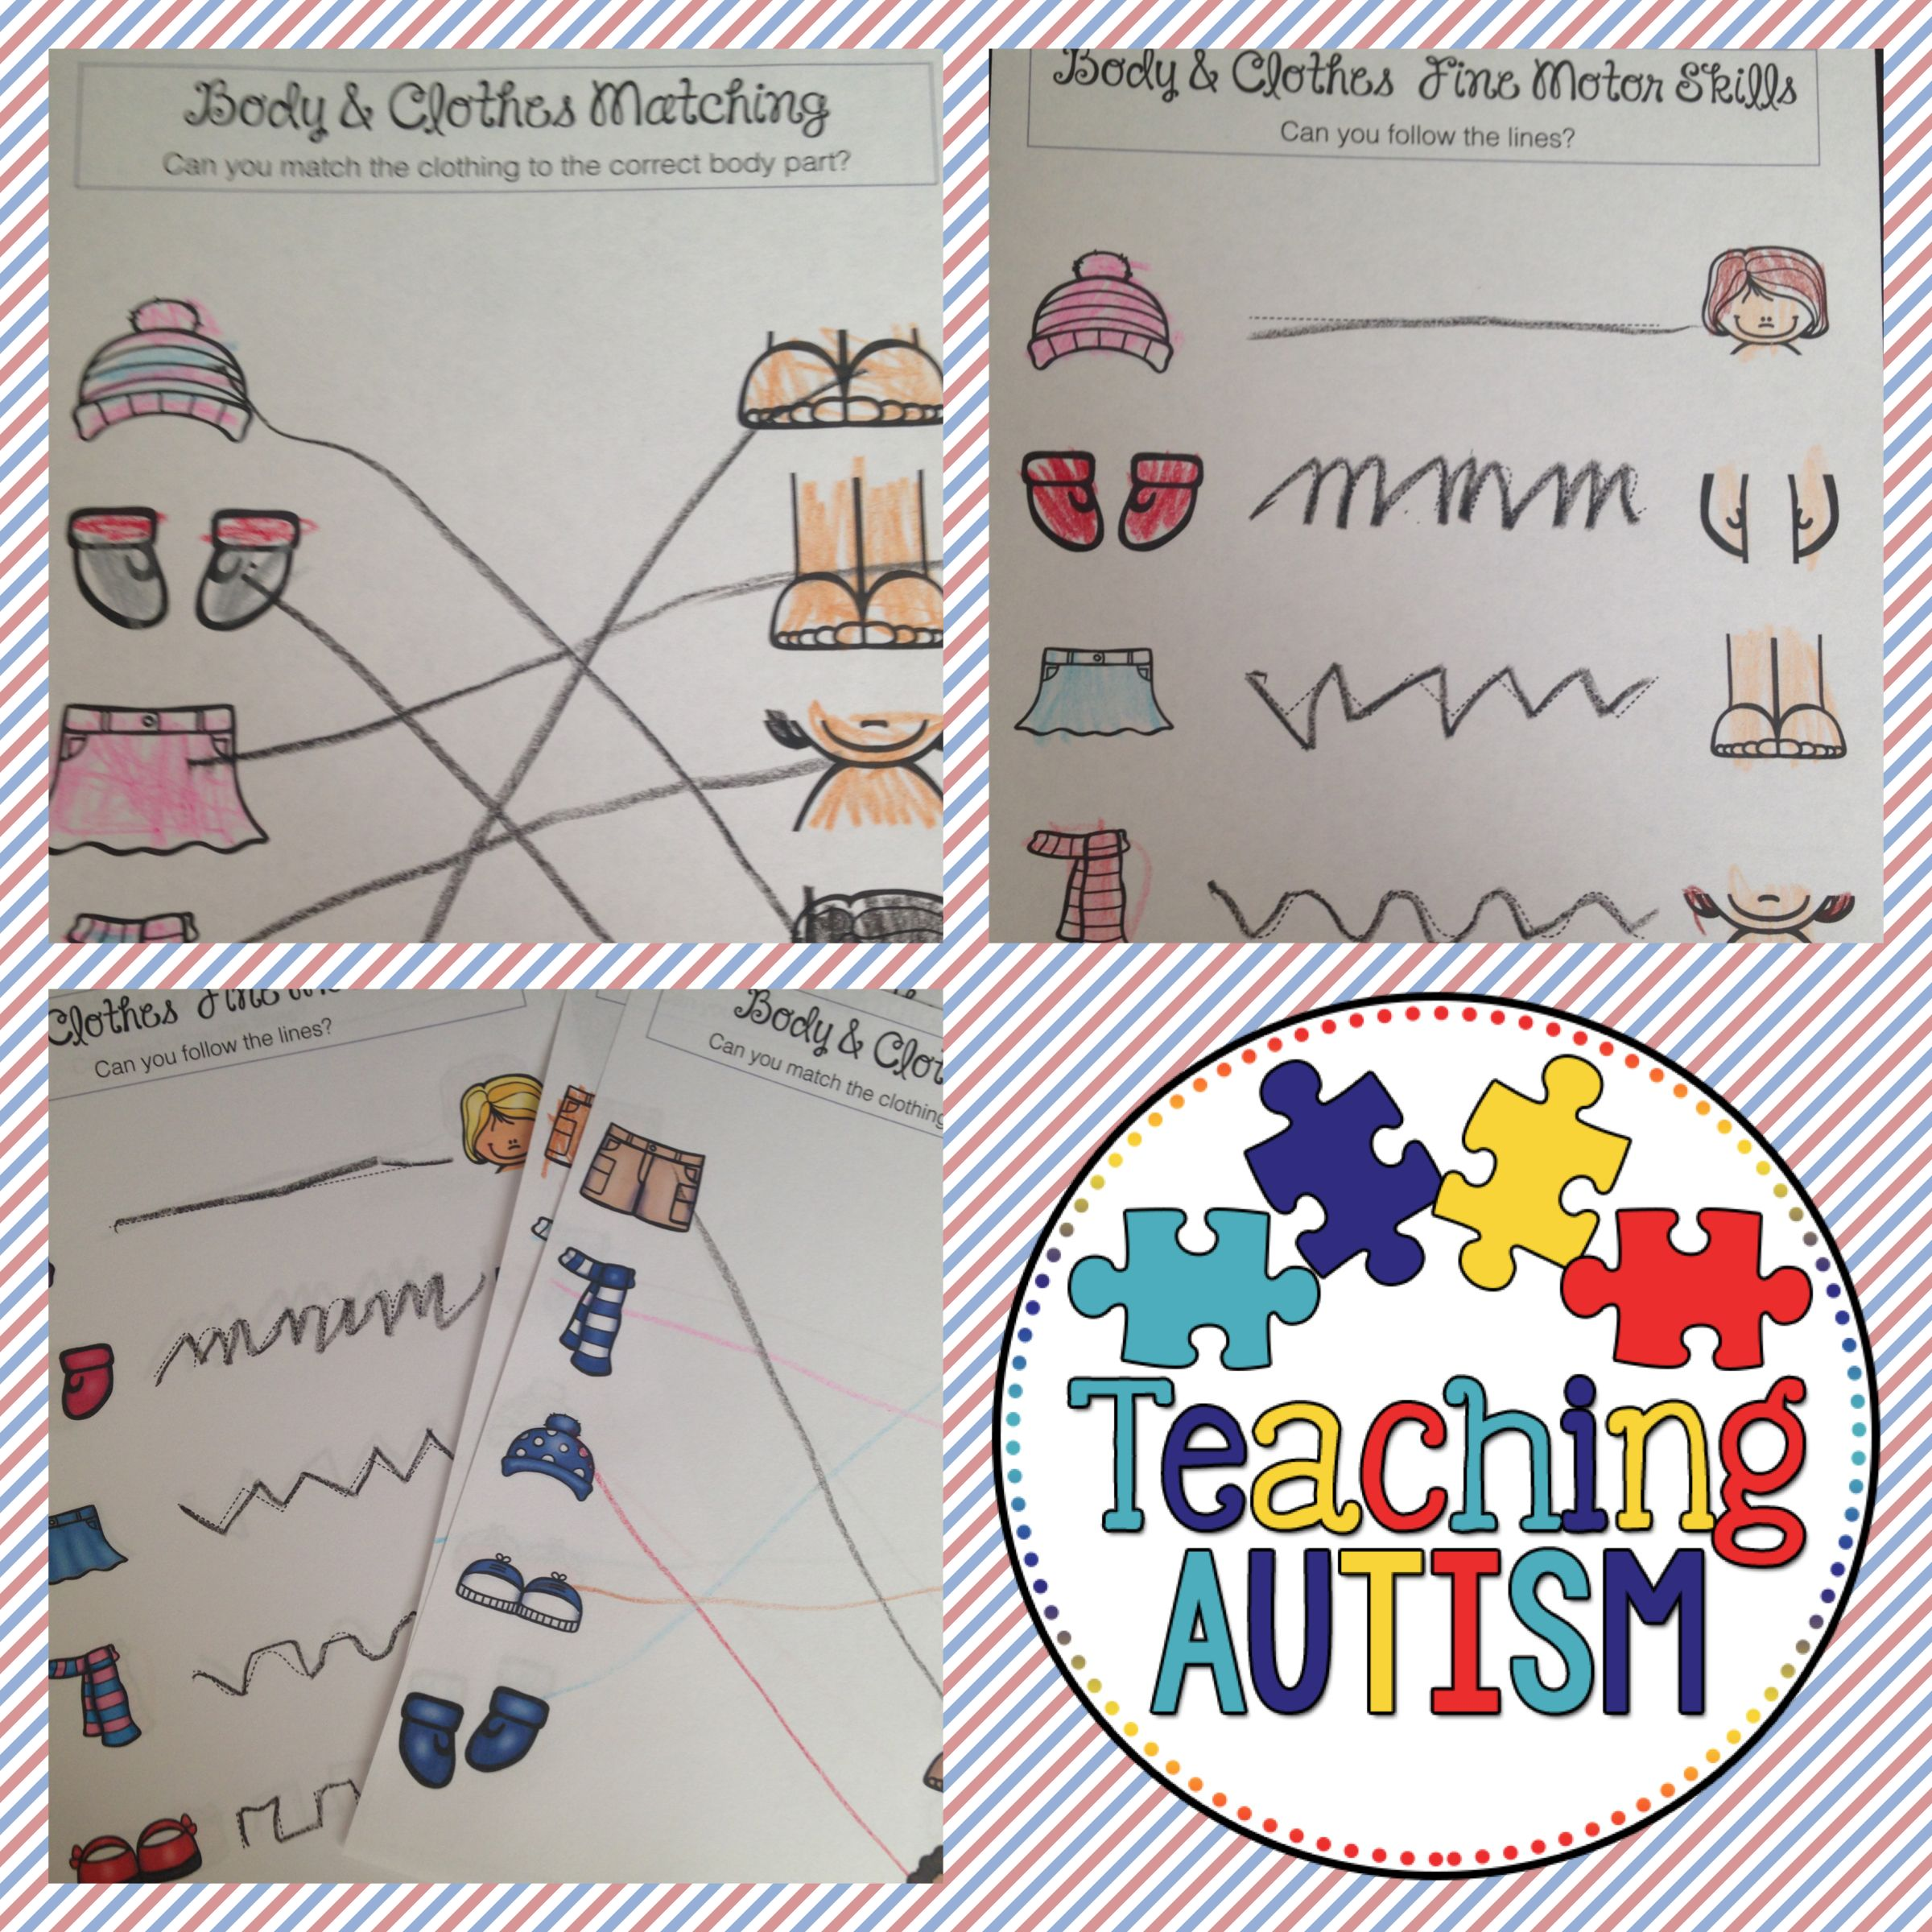 What Goes Together Activities For Special Education